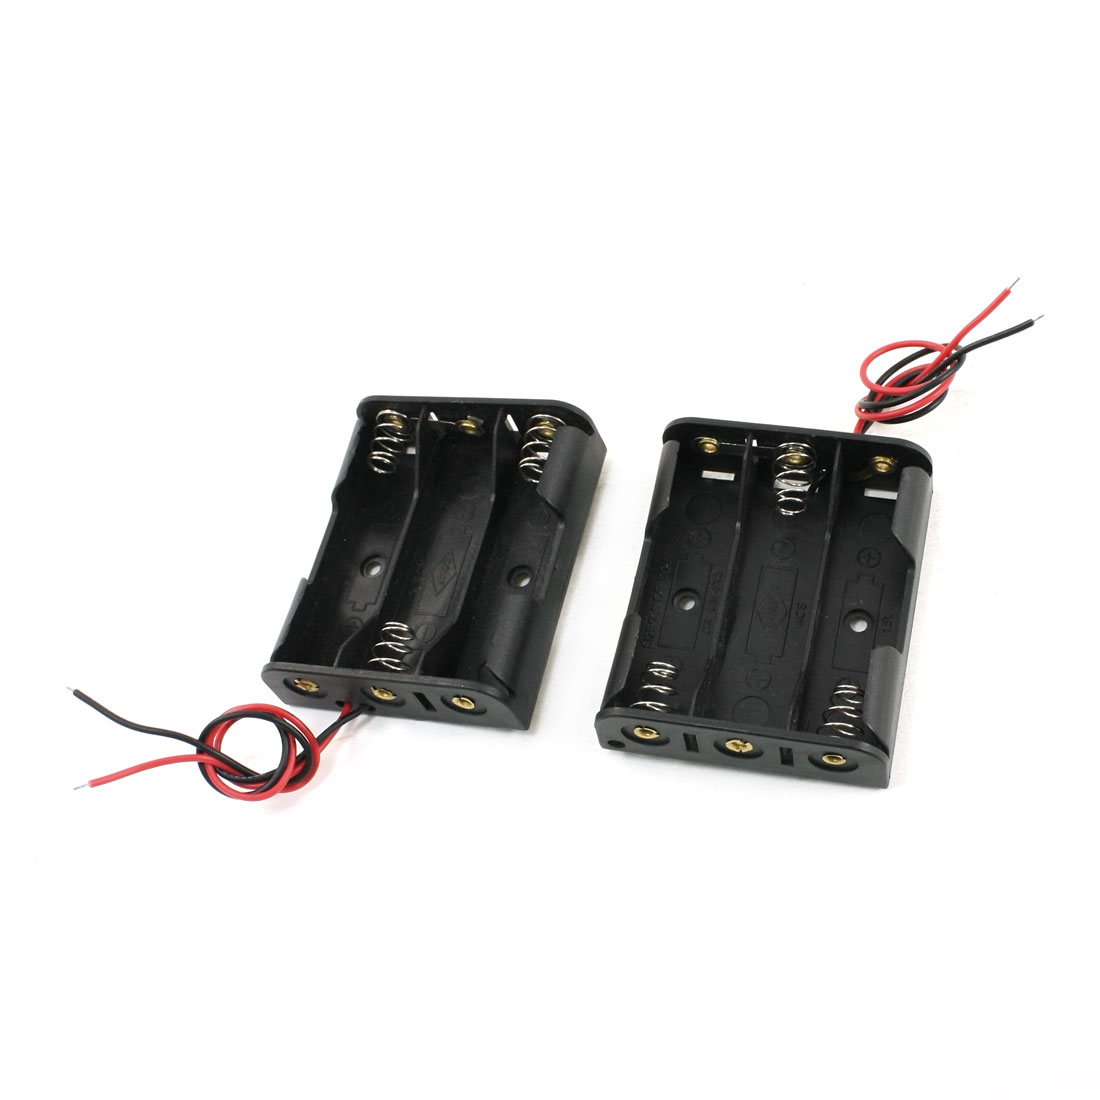 2PCS Battery Plastic Case Holder for 3x1.5V AA Batteries w Two Wires